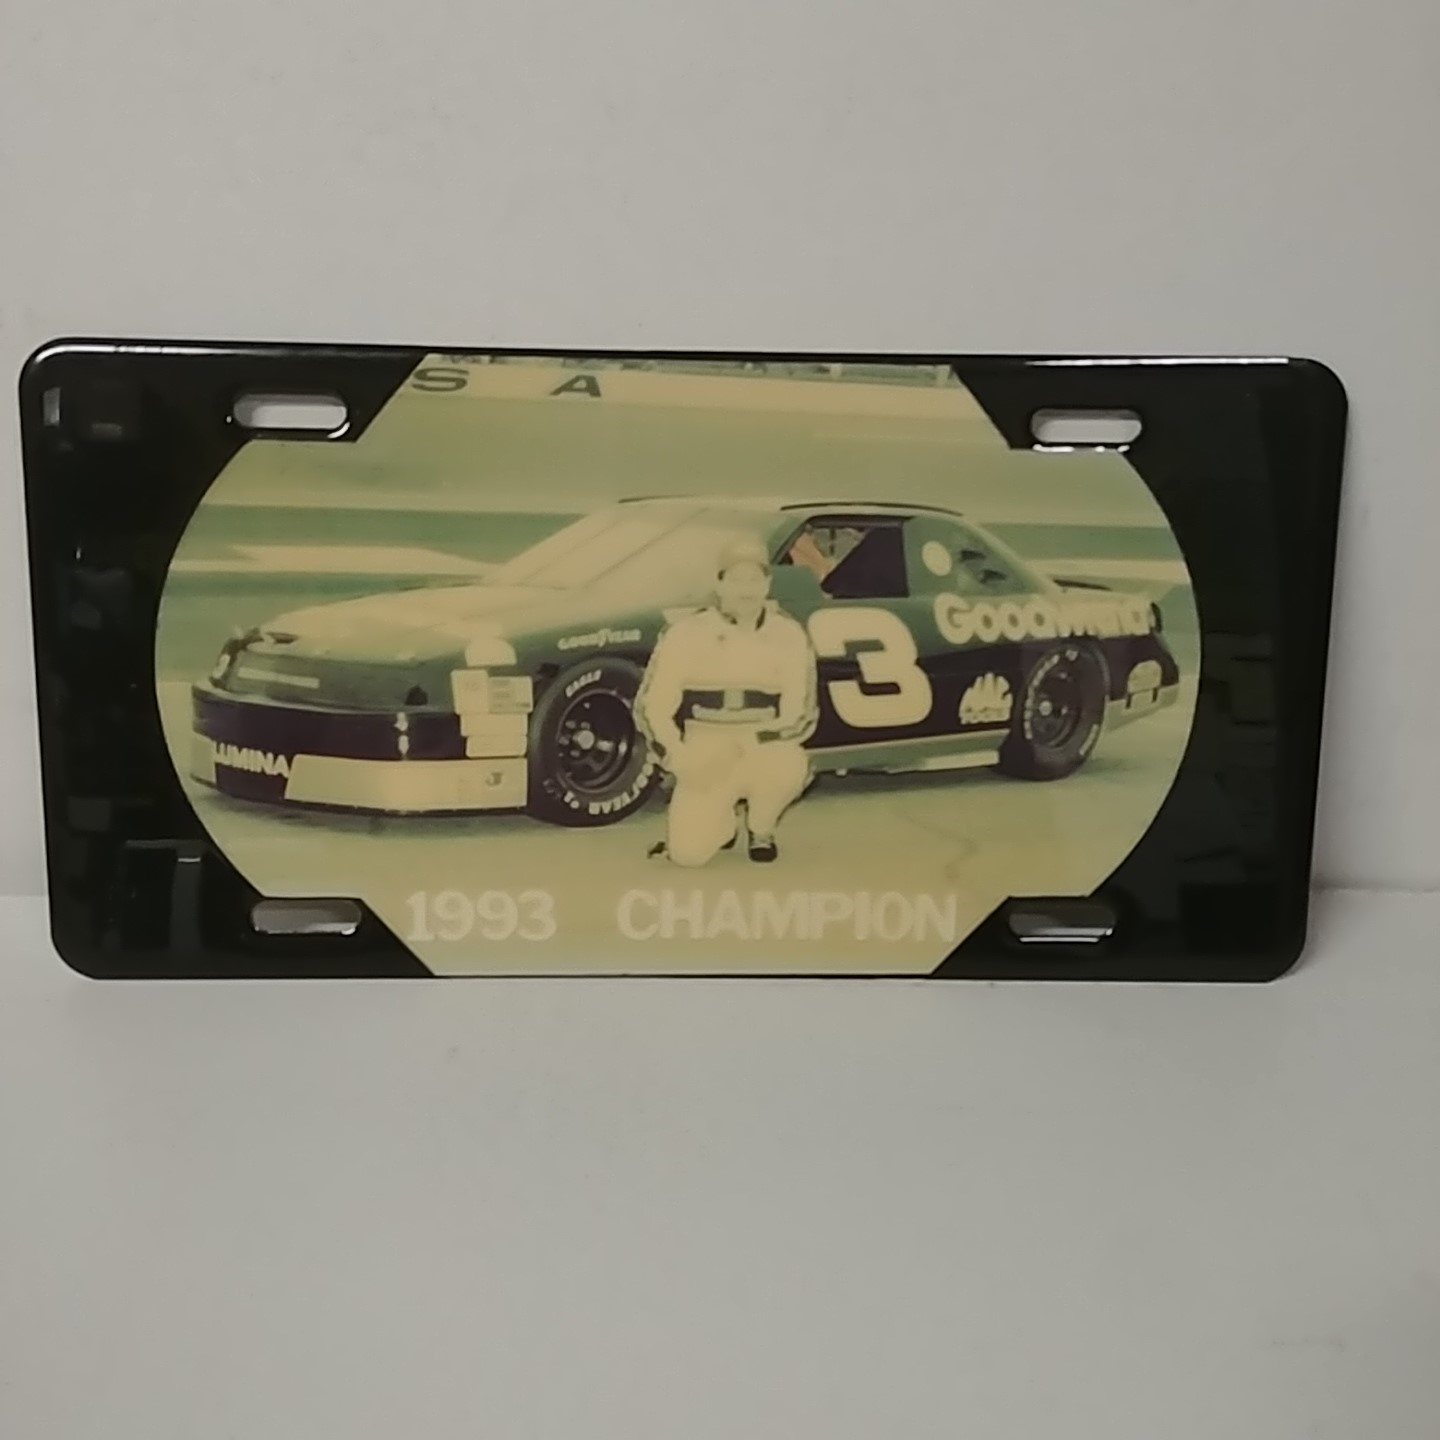 """1993 Dale Earnhardt Goodwrench """"Winston Cup Champion"""" plastic license plate"""